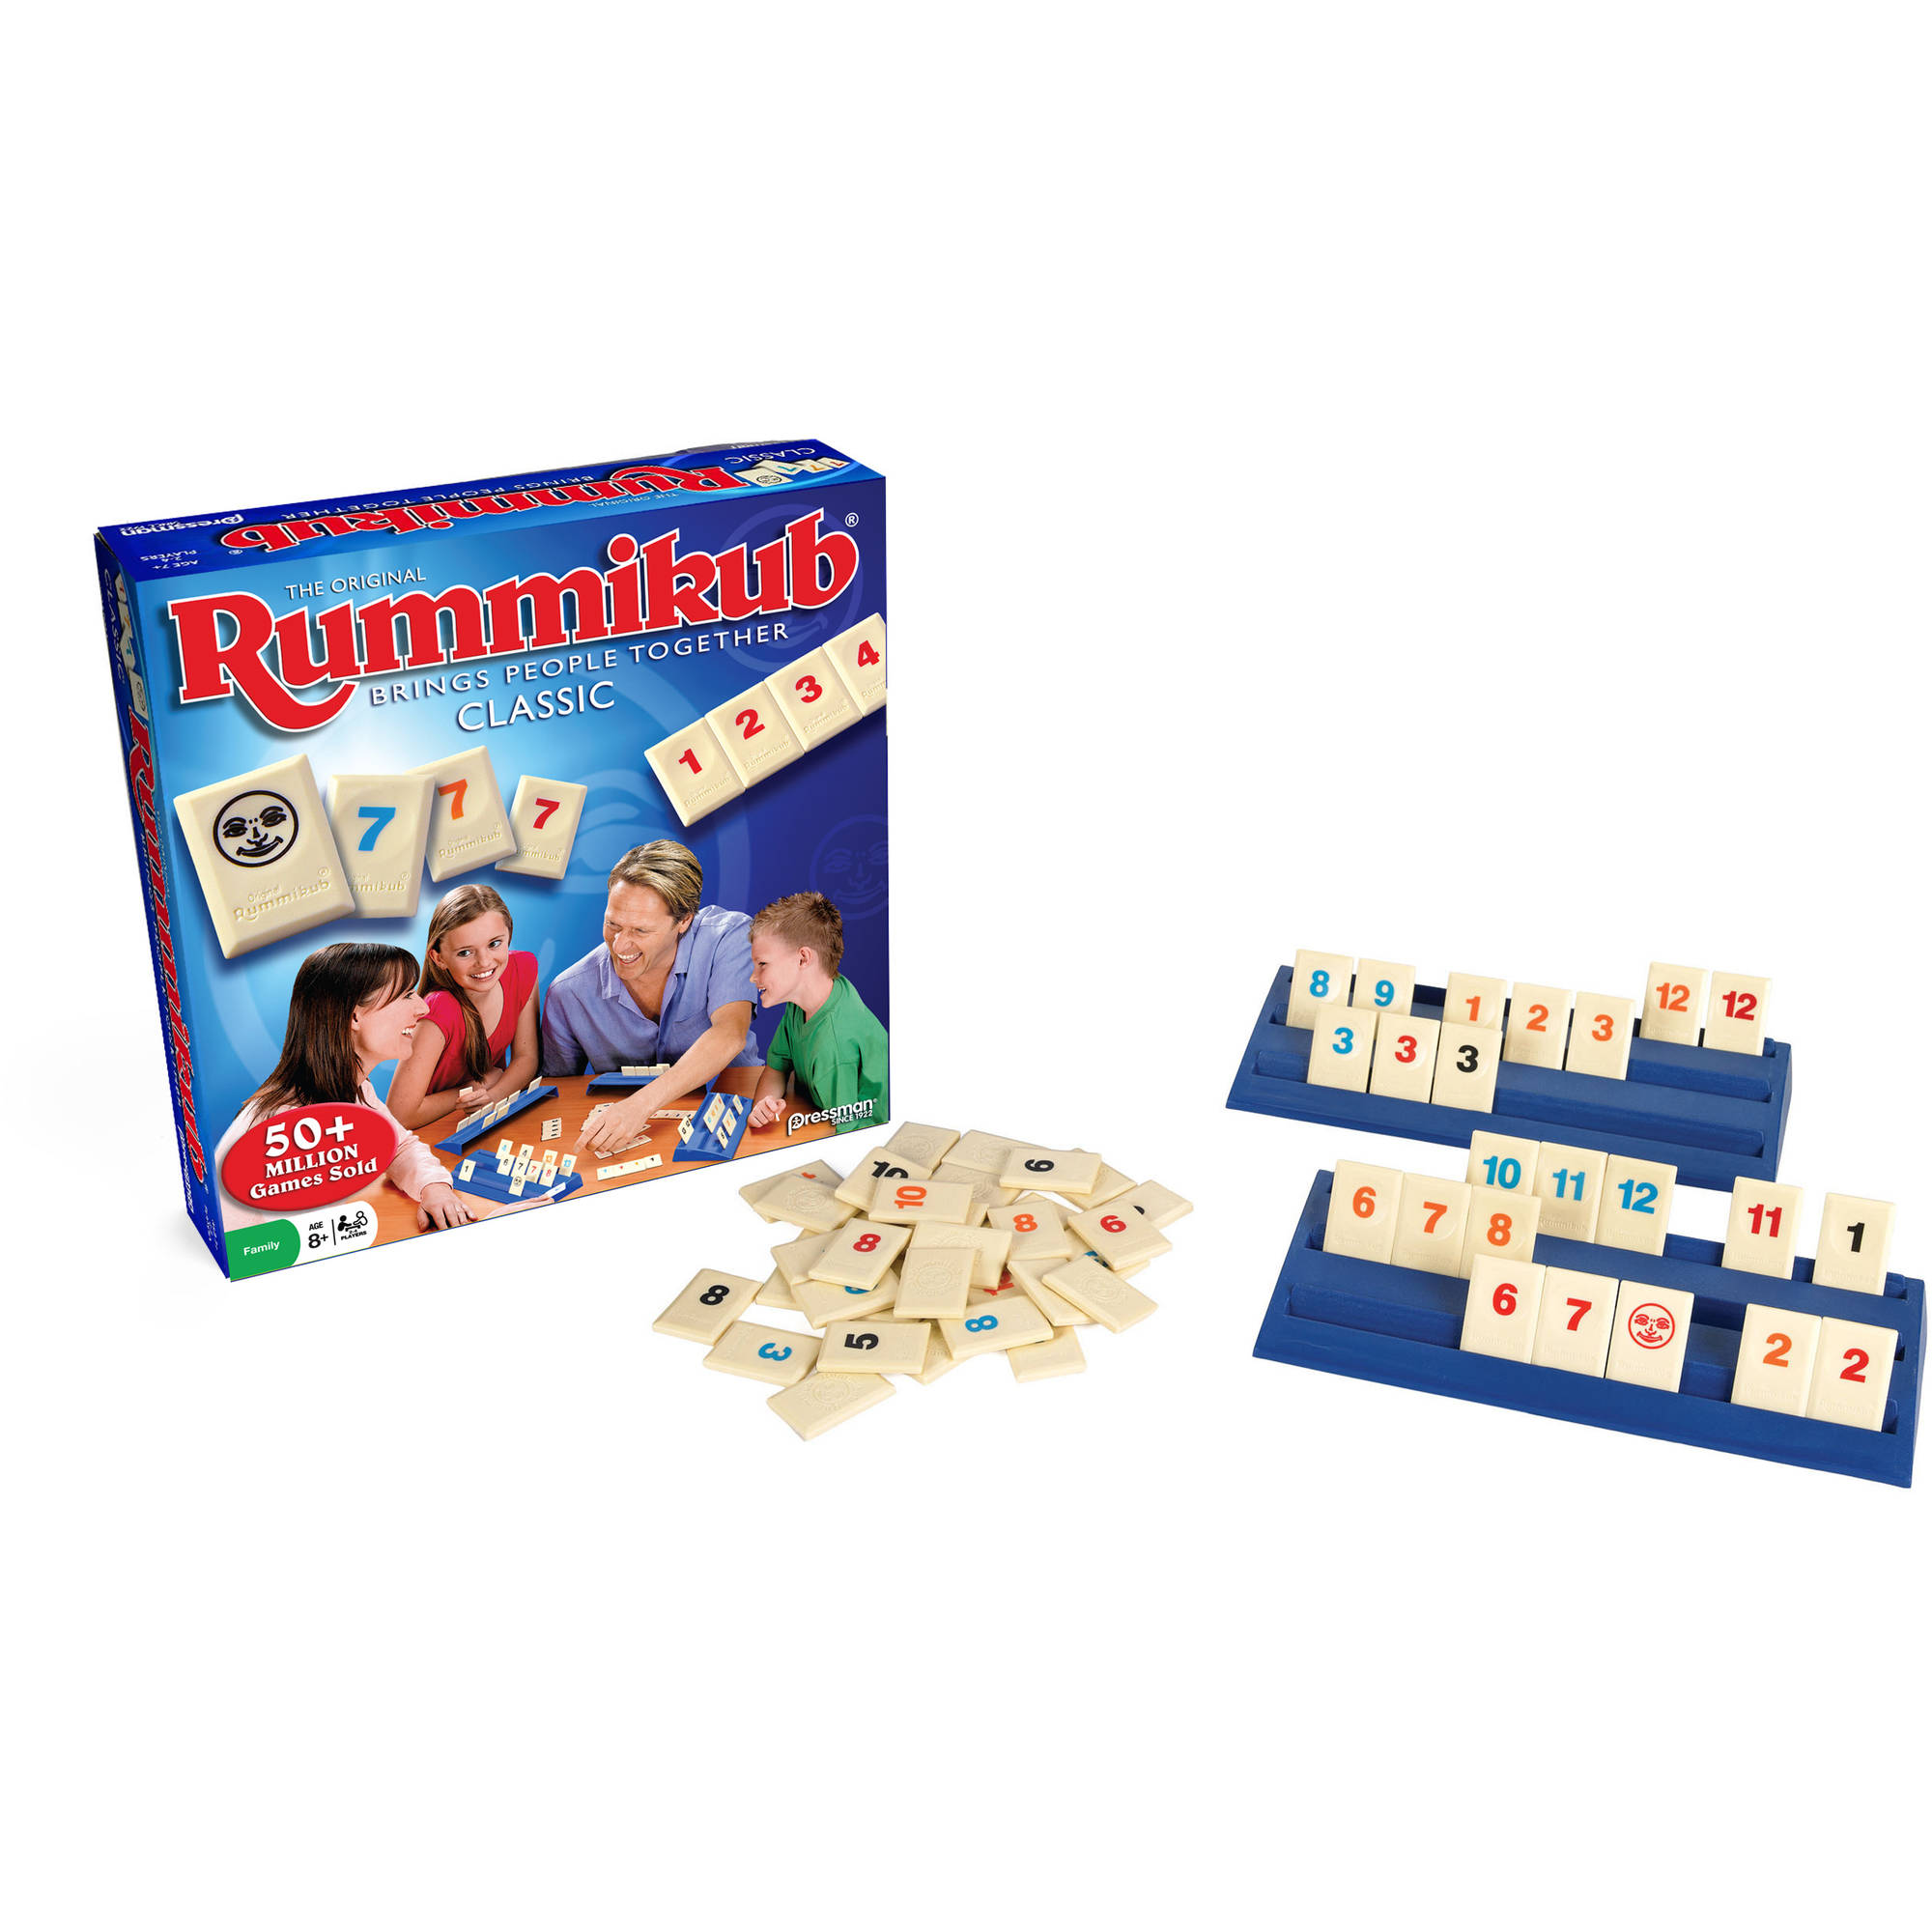 Rummikub Original Edition